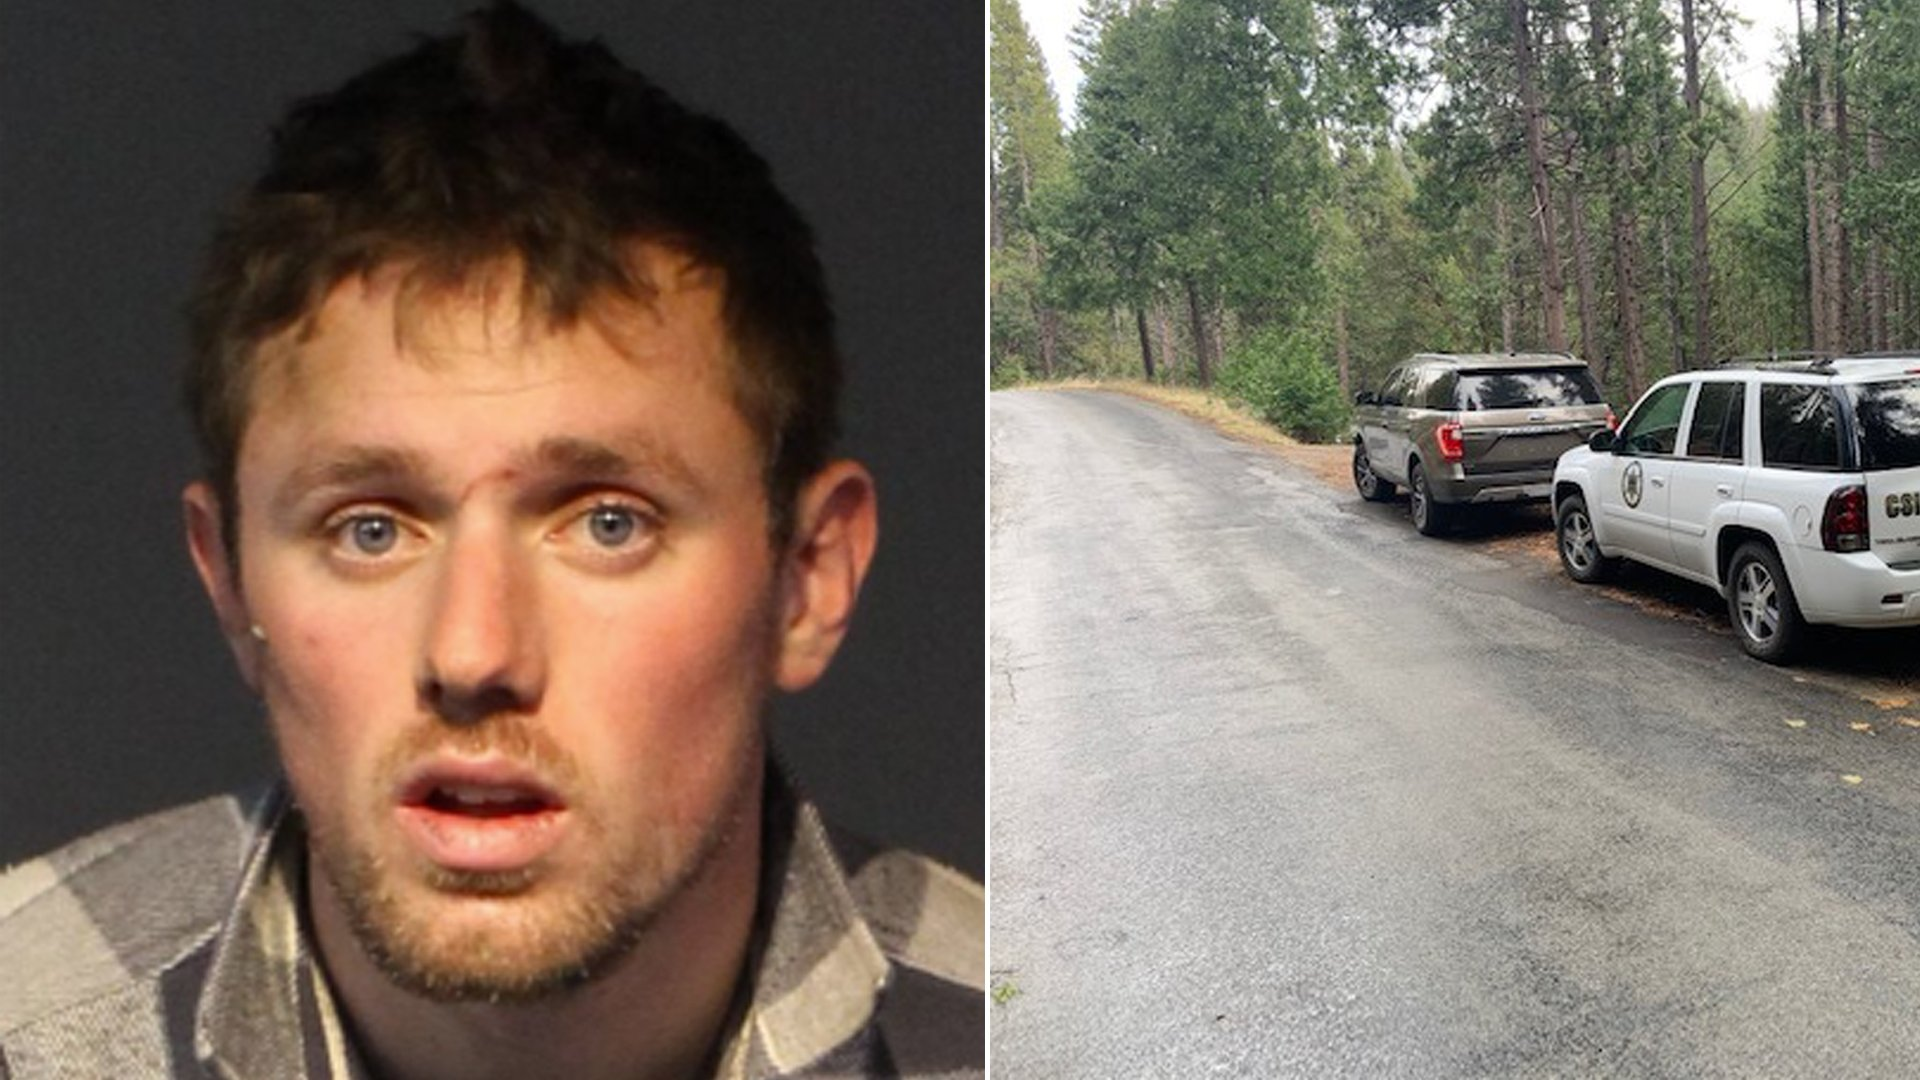 Sean Purdy, 20, is seen in an undated booking provided by the Washoe County Sheriff's Office. On the right, Deputies search an area in Amador Pines, Pioneer, in a photo released by the Amador County Sheriff's Office.